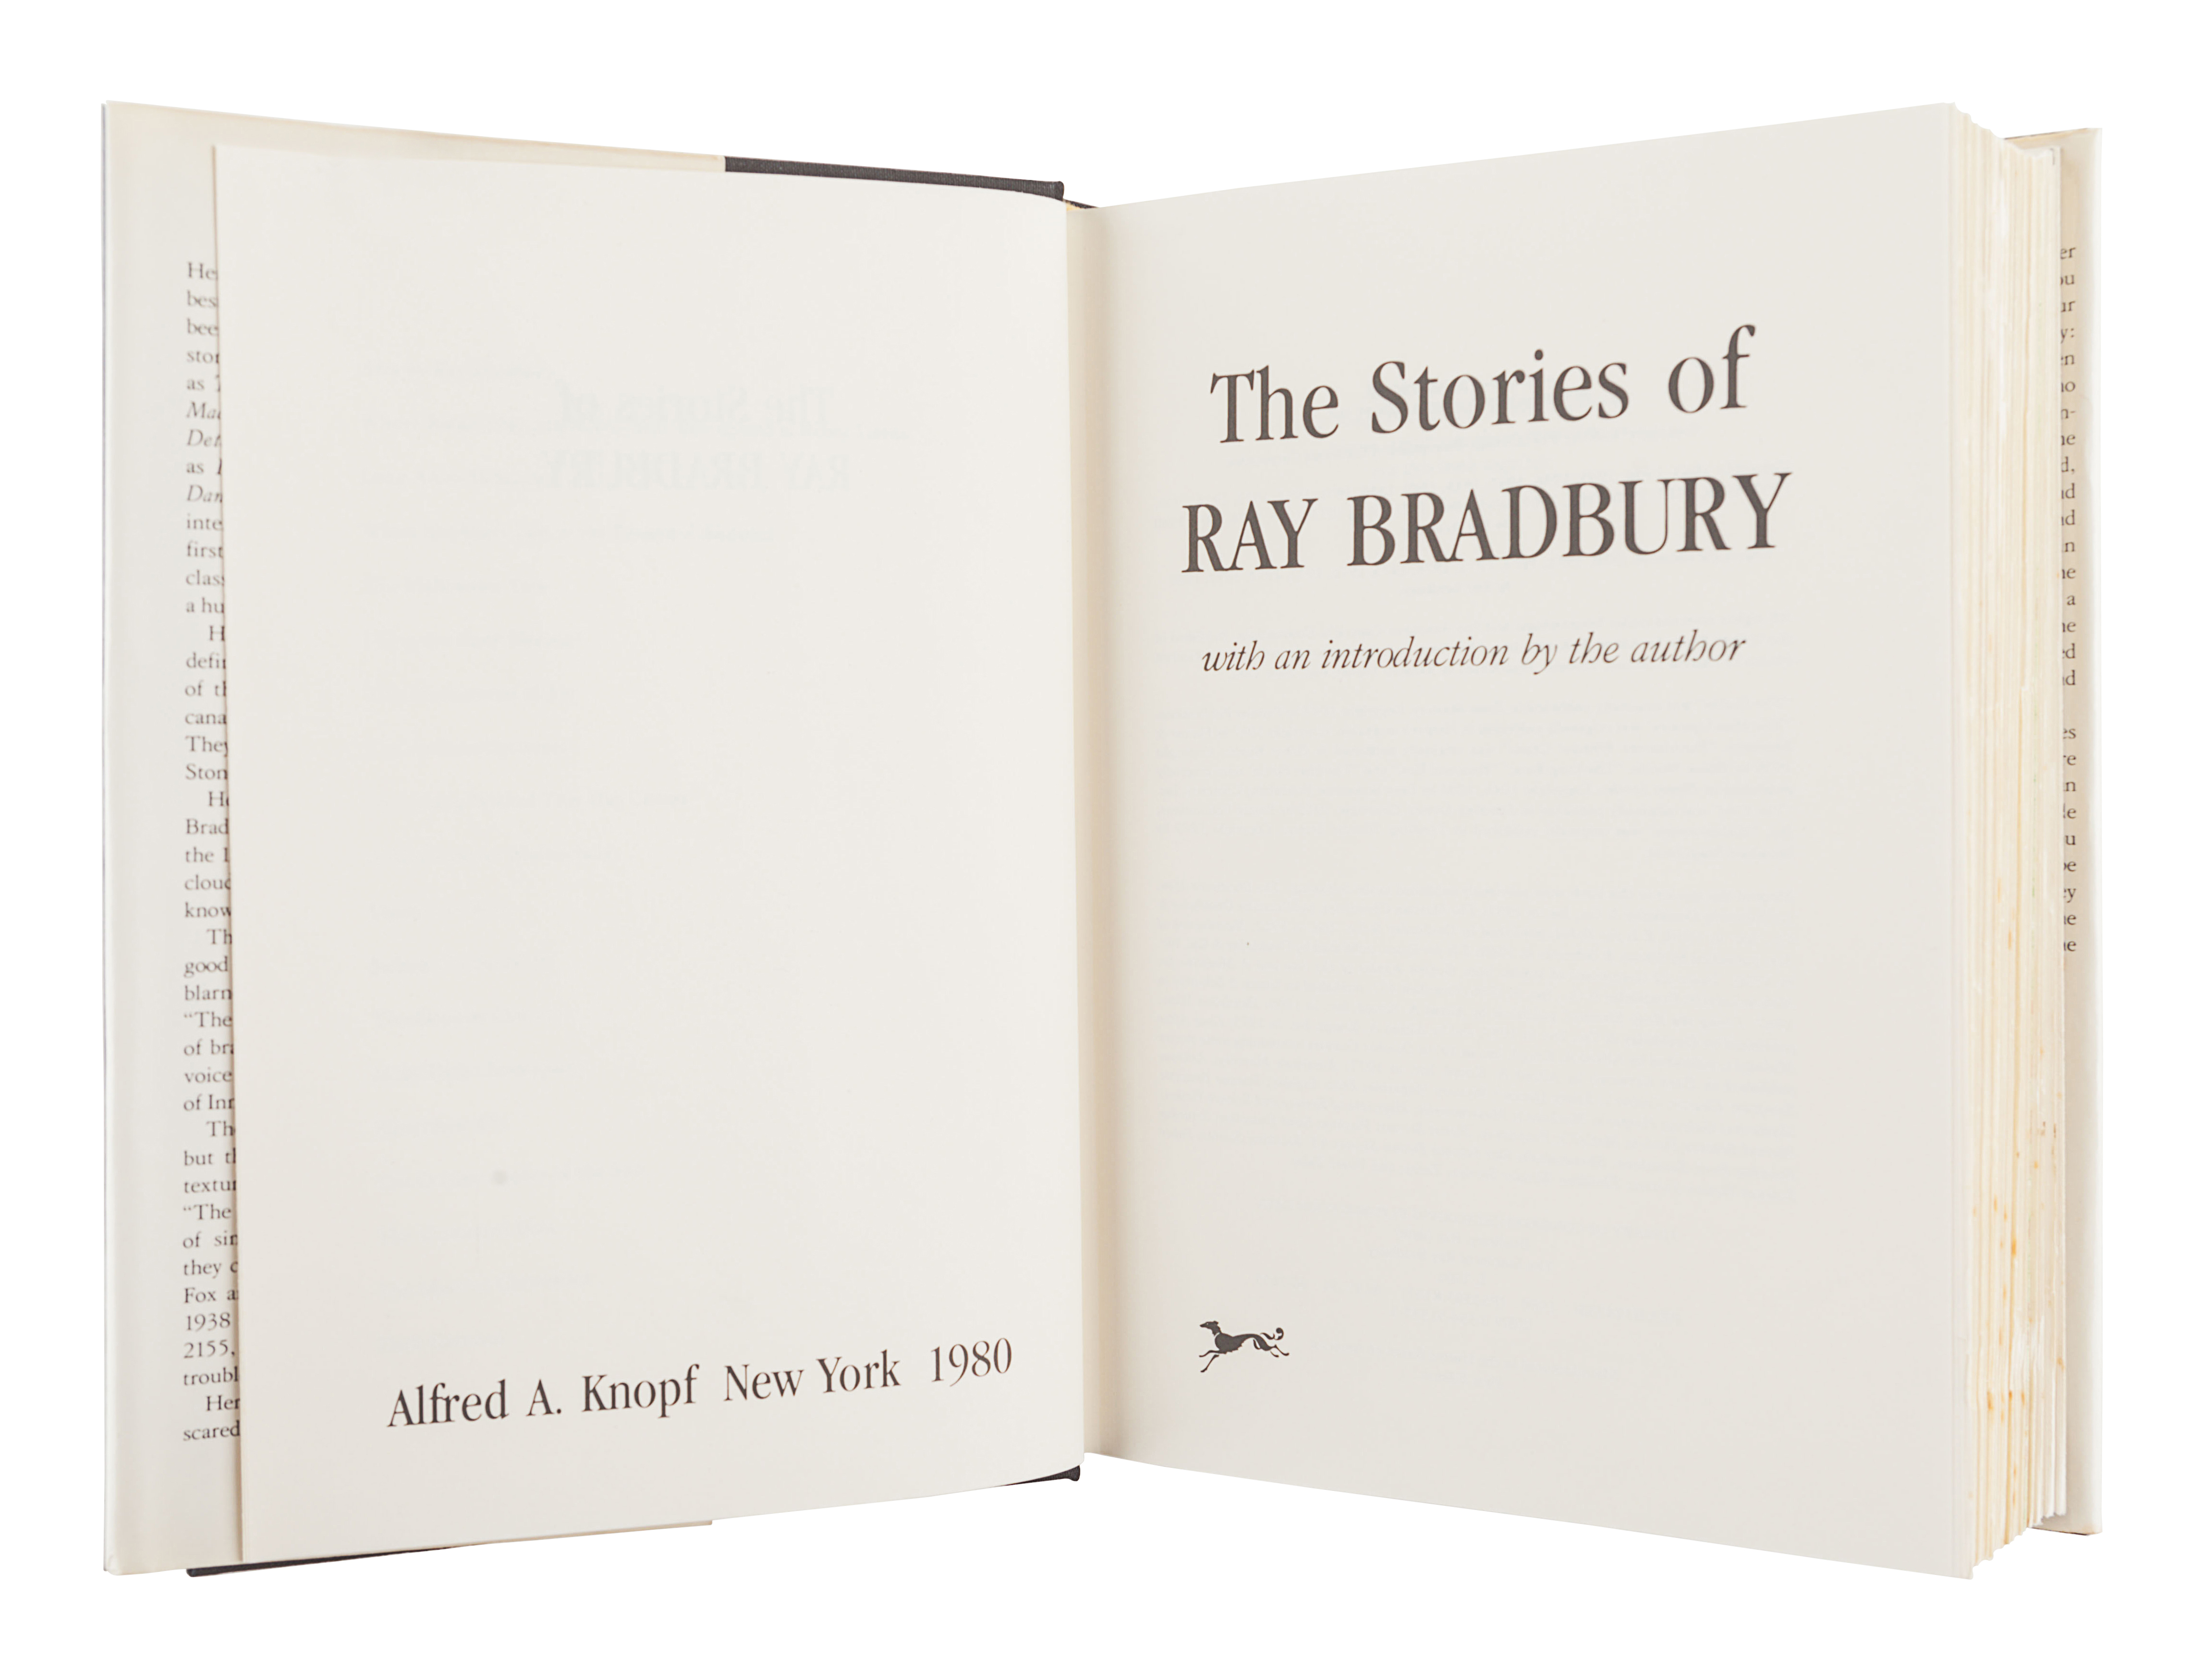 [BRADBURY, Ray (1920-2012)]. A group of 5 works SIGNED OR INSCRIBED by Bradbury, comprising: - Image 8 of 11